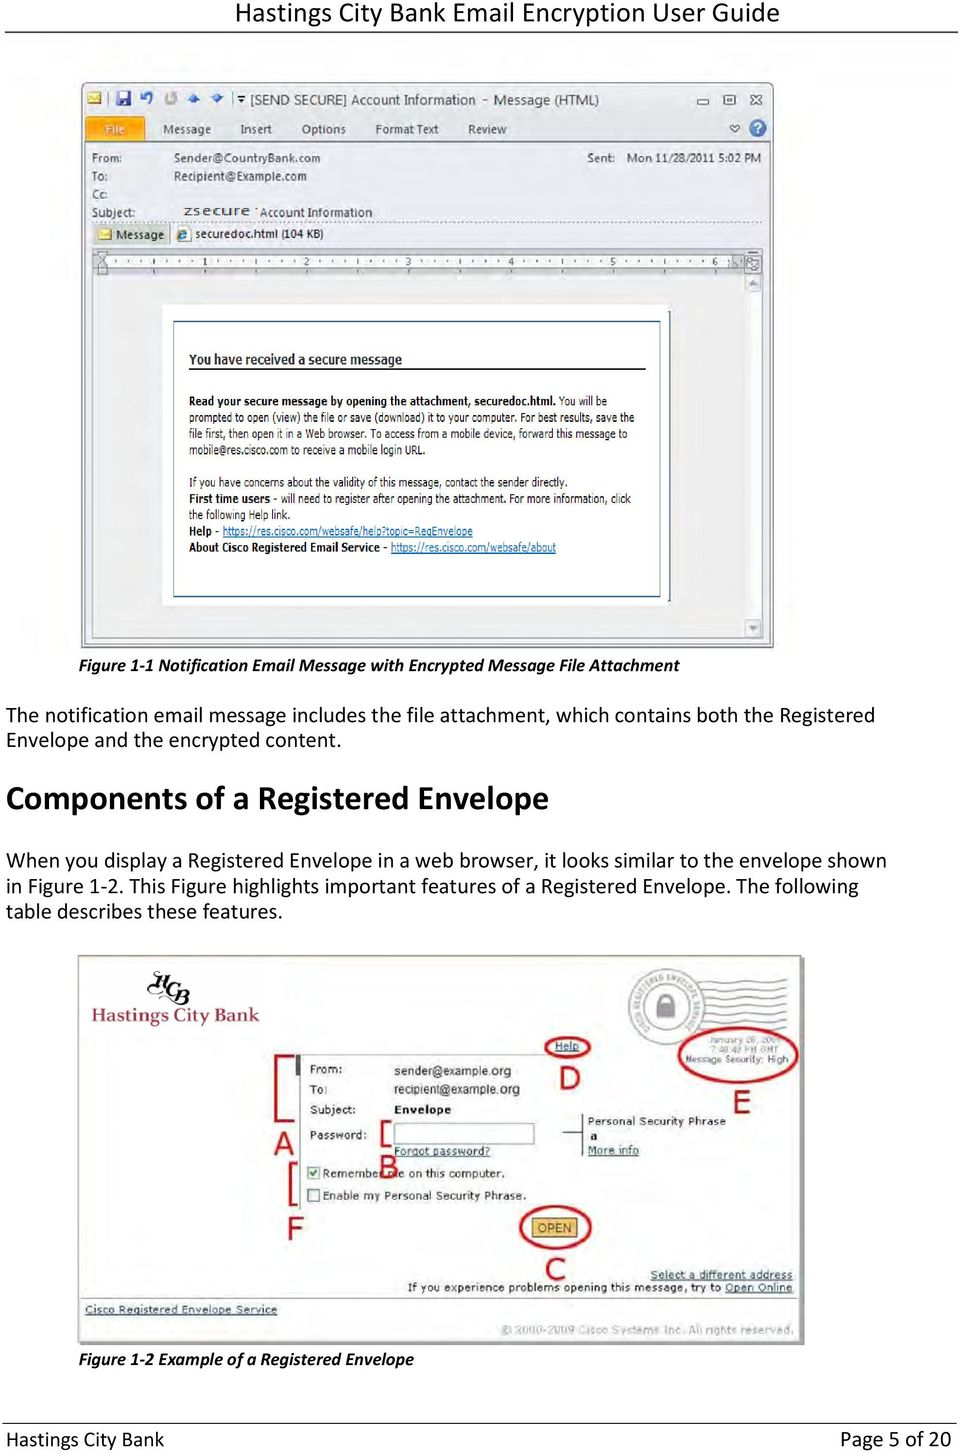 Components of a Registered Envelope When you display a Registered Envelope in a web browser, it looks similar to the envelope shown in